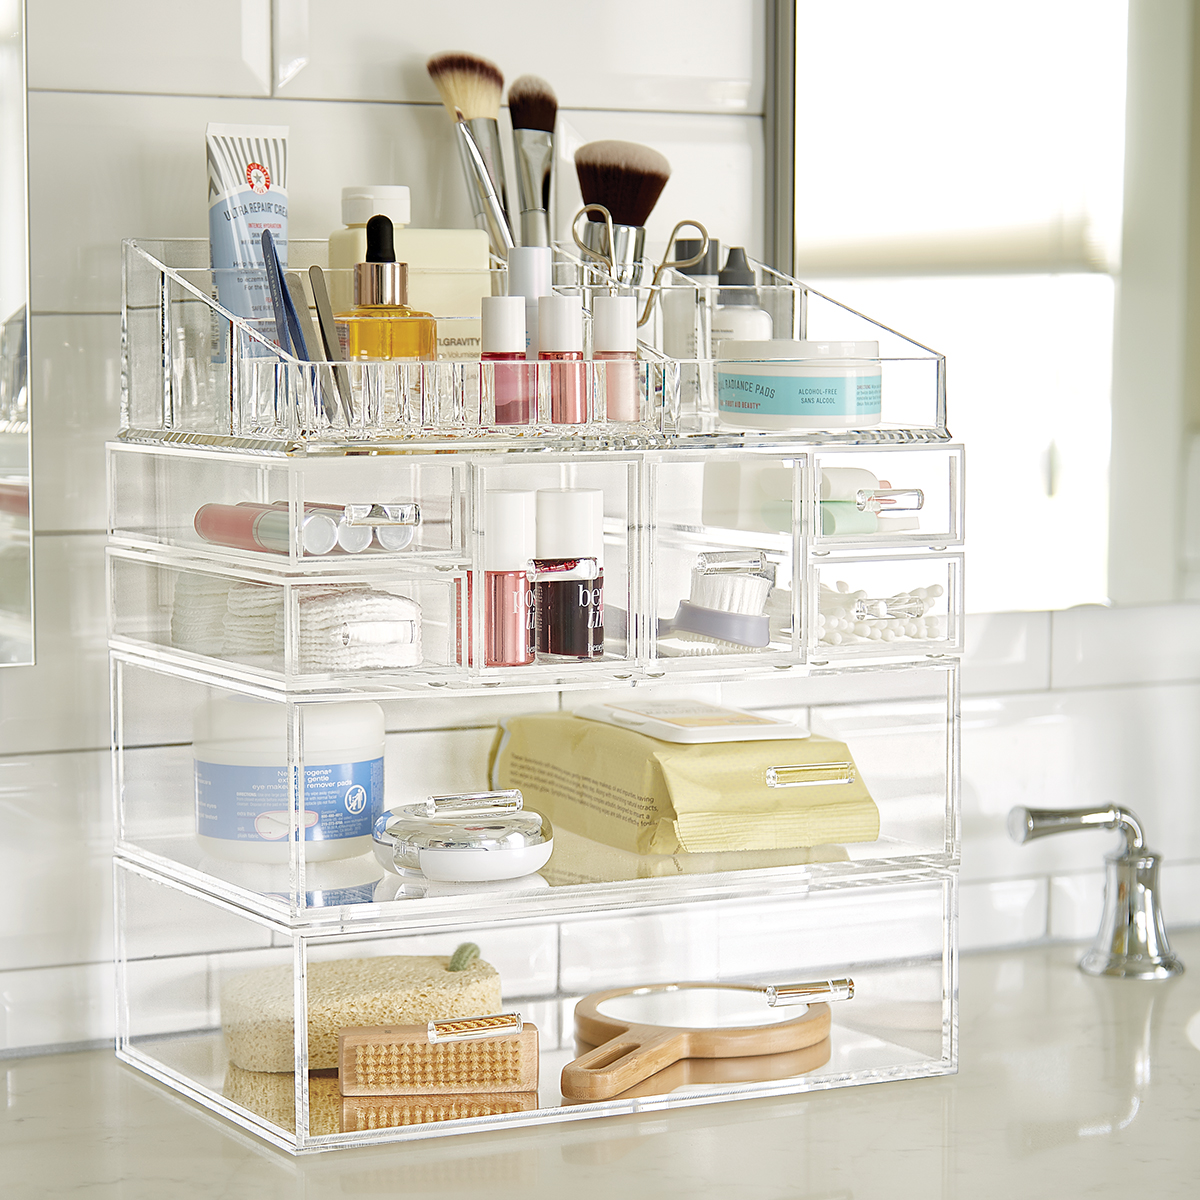 Acrylic Organizer & Luxe Acrylic Modular Makeup Storage | The Container Store